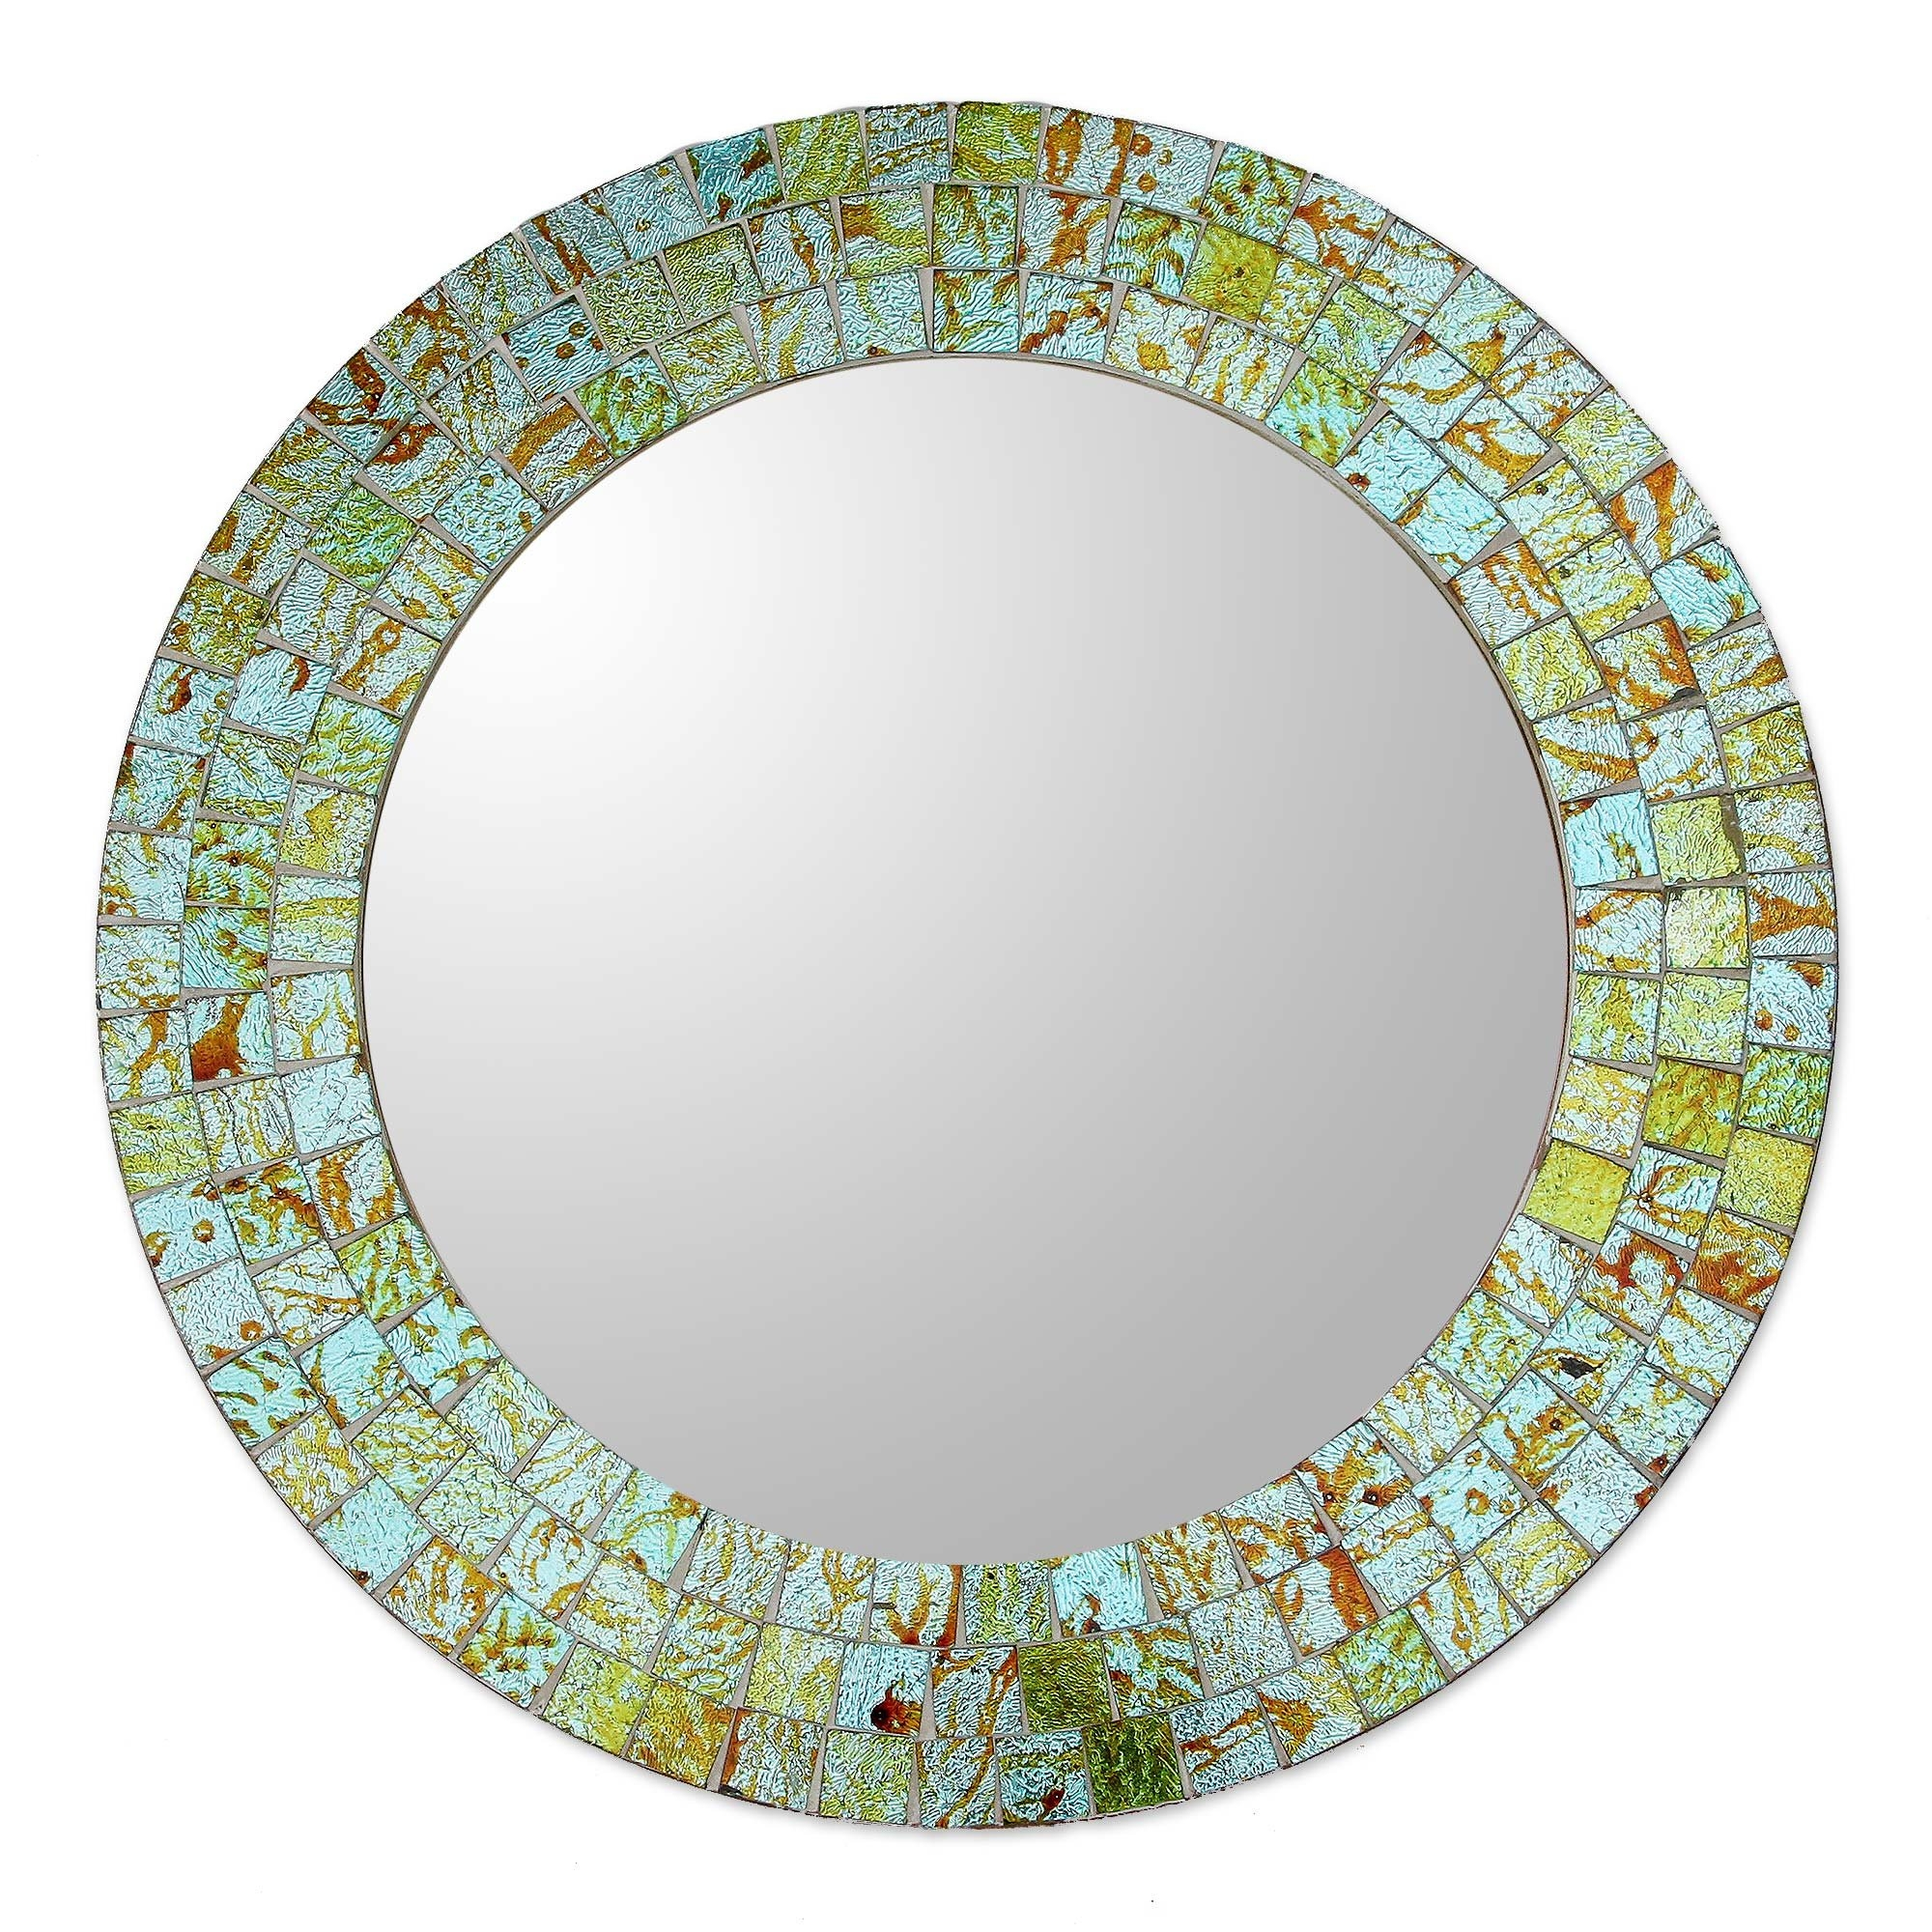 Novica Aqua And Lime Mosaic Wall Mirror Reviews Wayfair Inside Mosaic Wall Mirrors (Image 11 of 15)